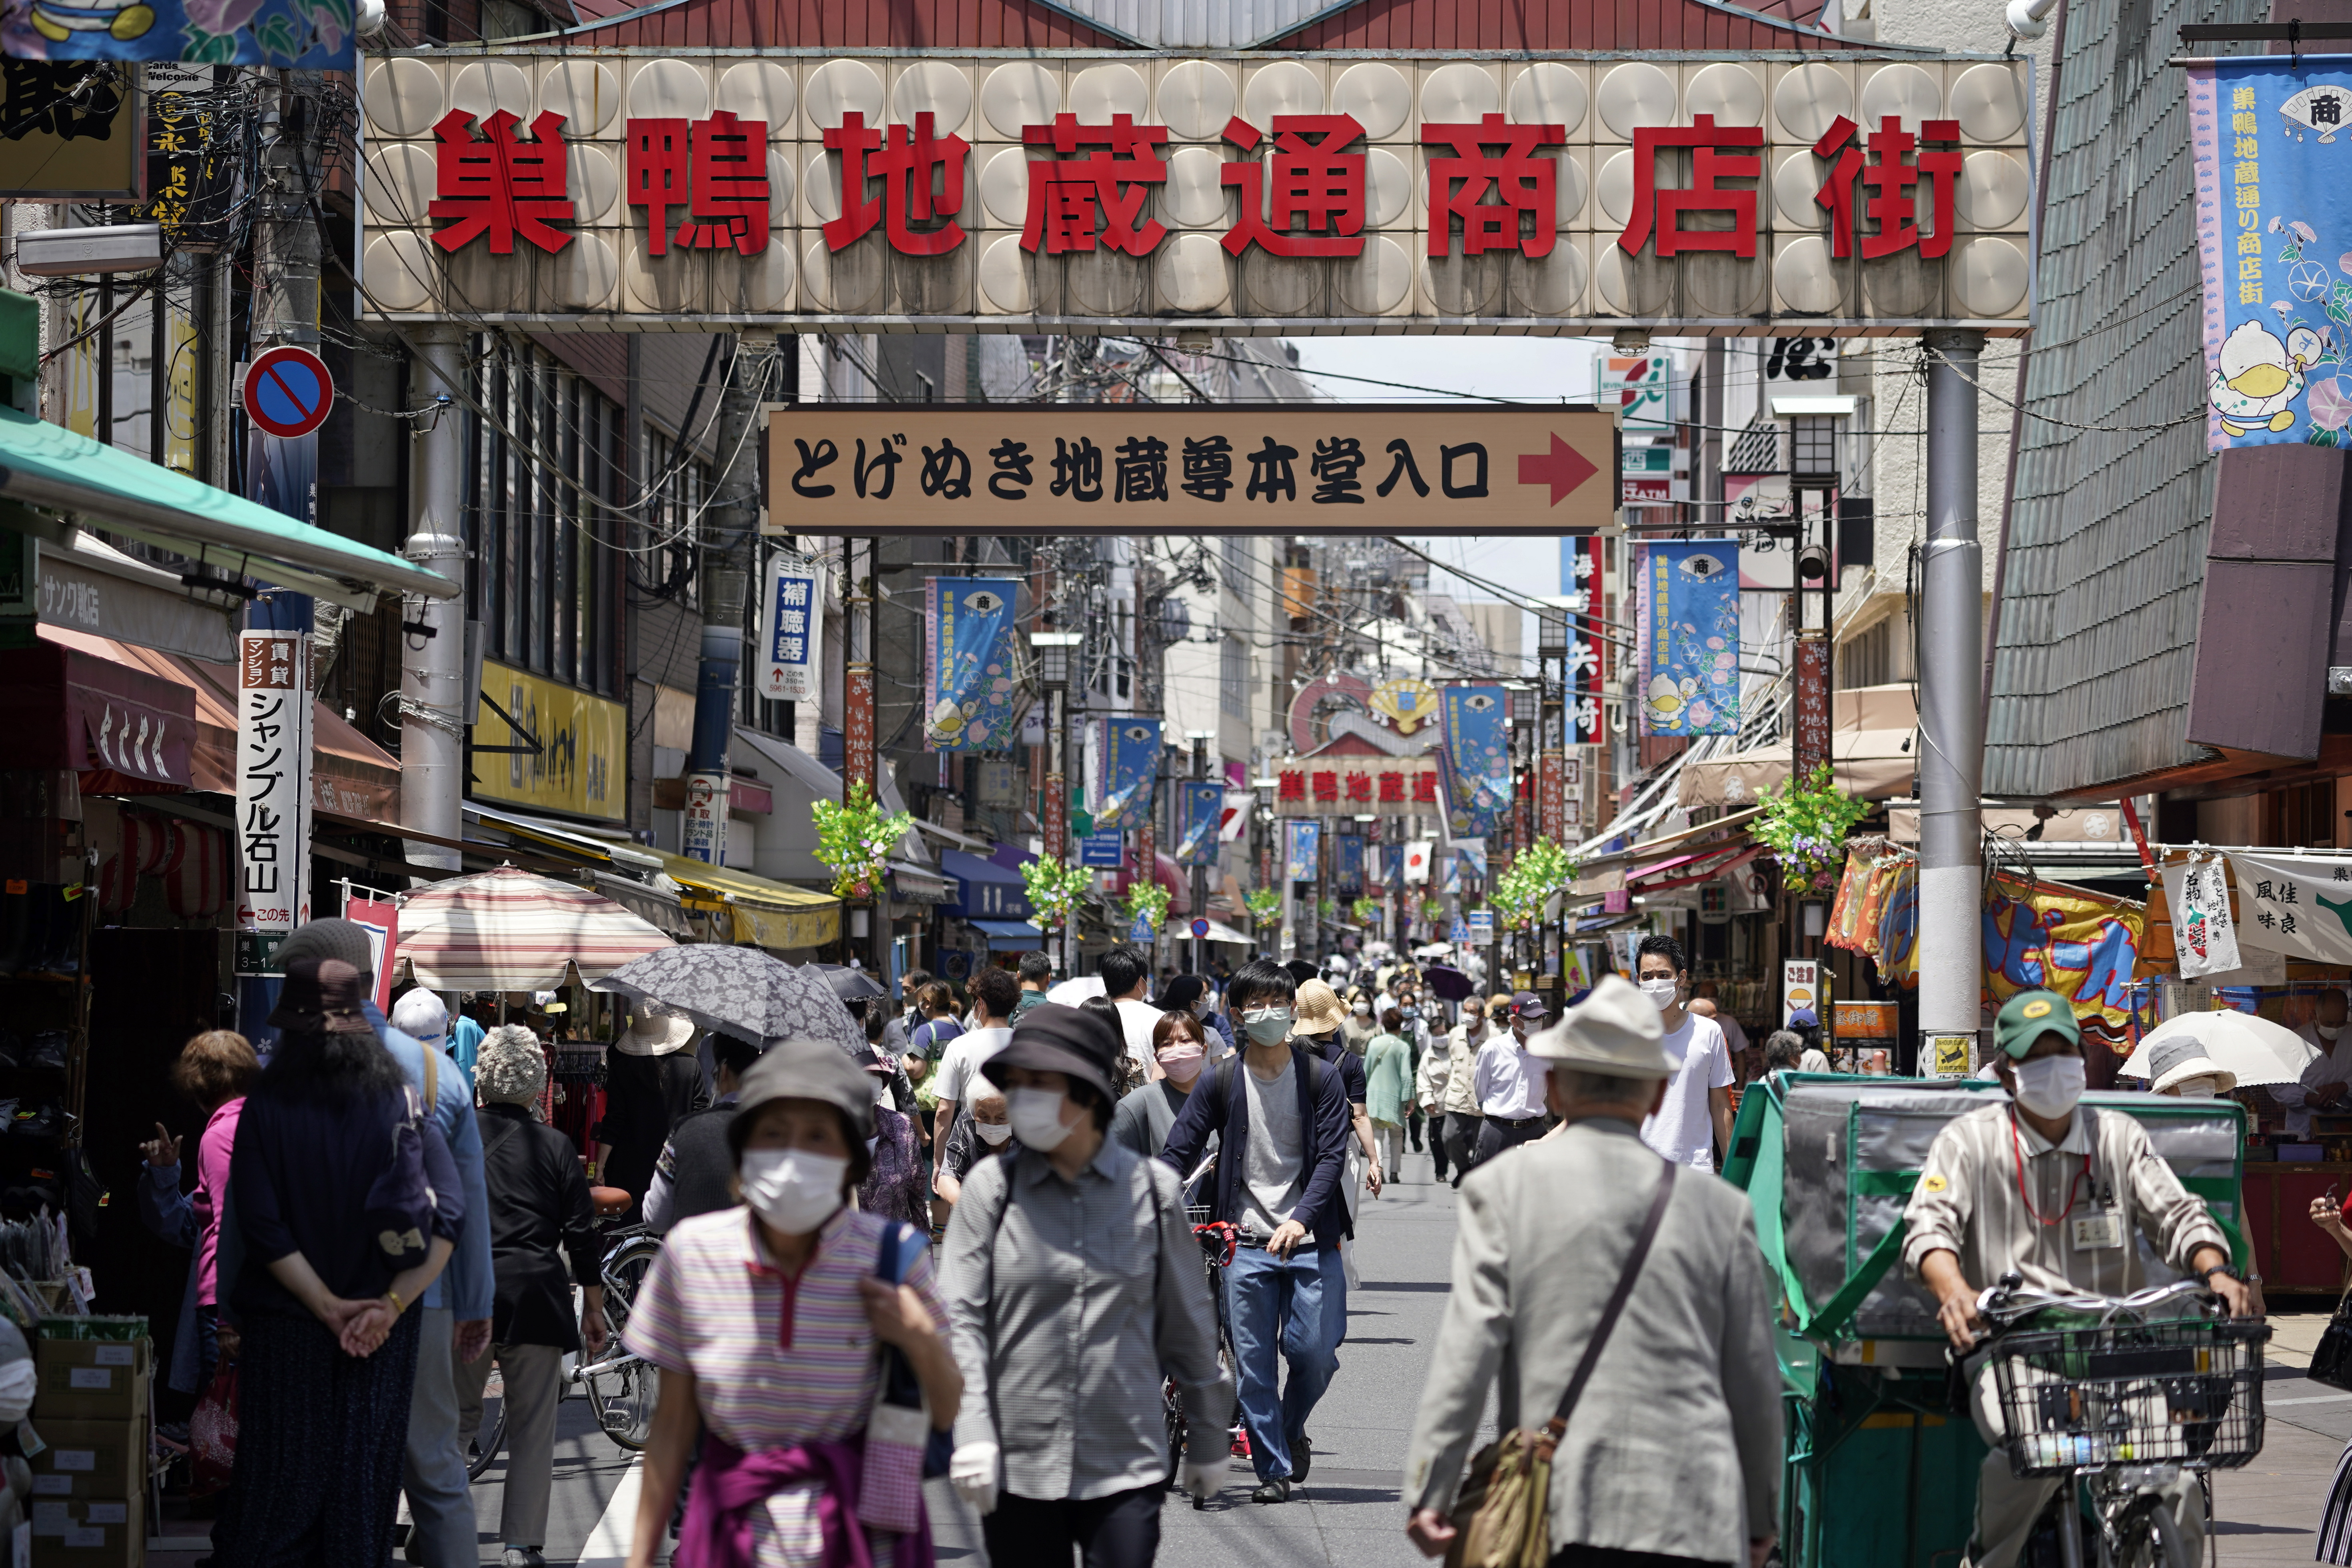 More people are out and about in Tokyo as daily infection rates in Japan have seen a steady decrease.